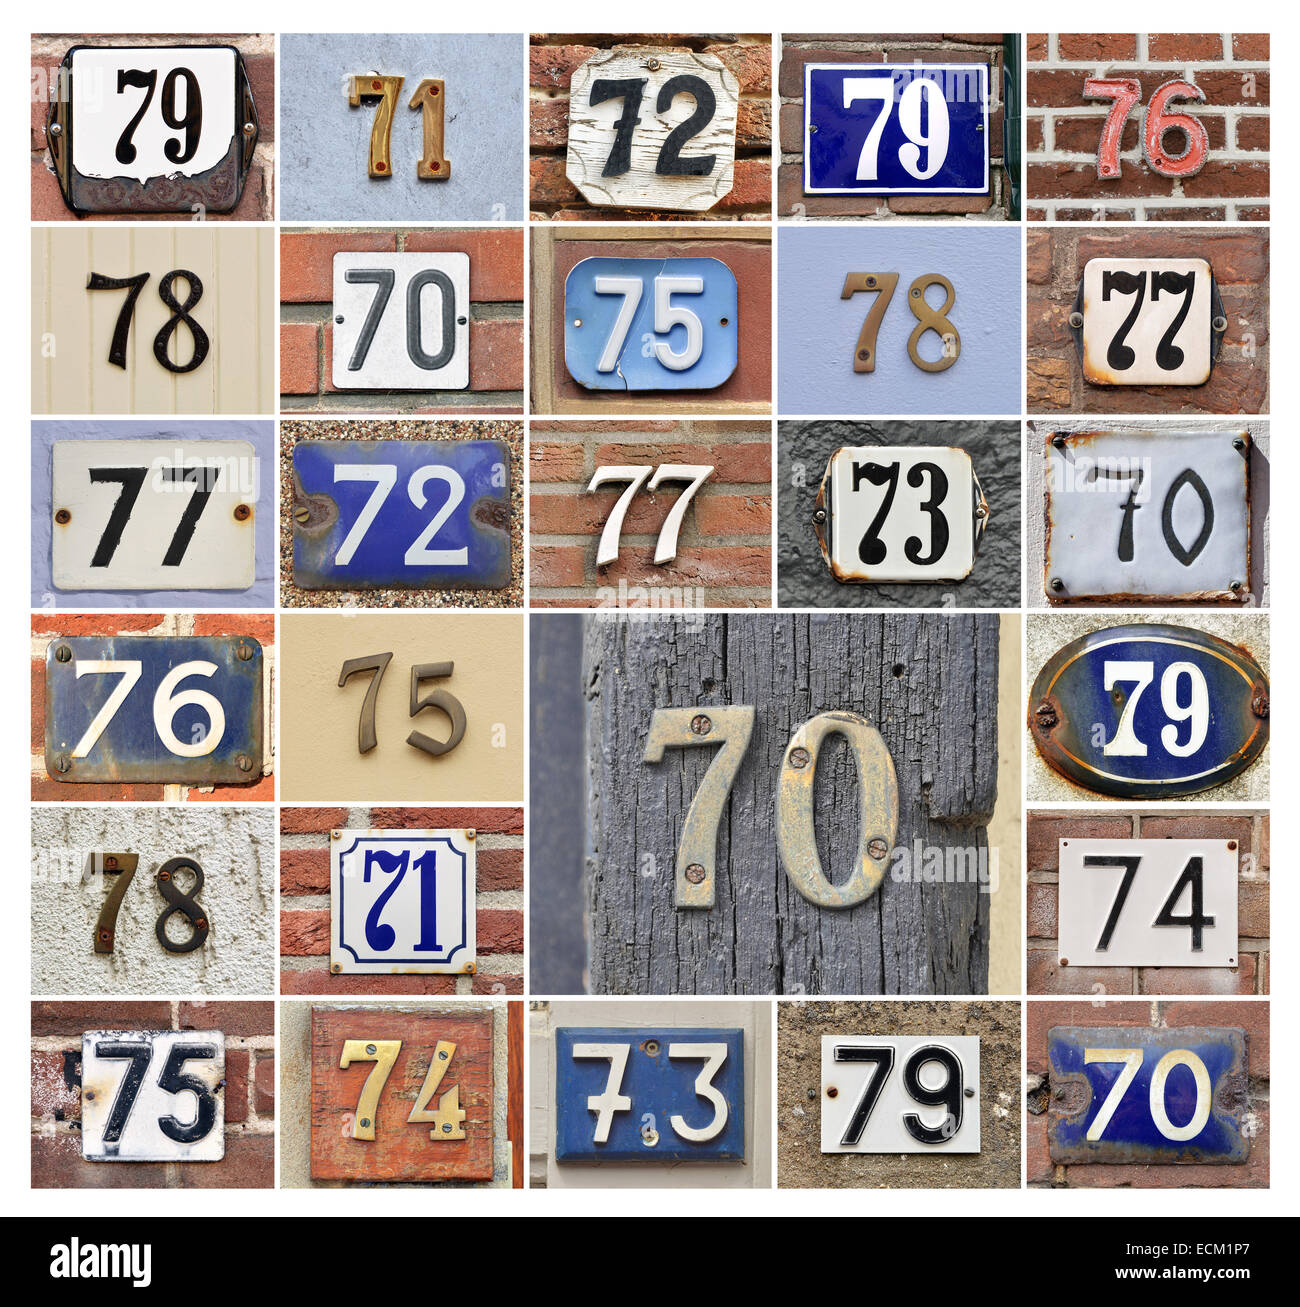 Collage of House numbers 70s - Stock Image